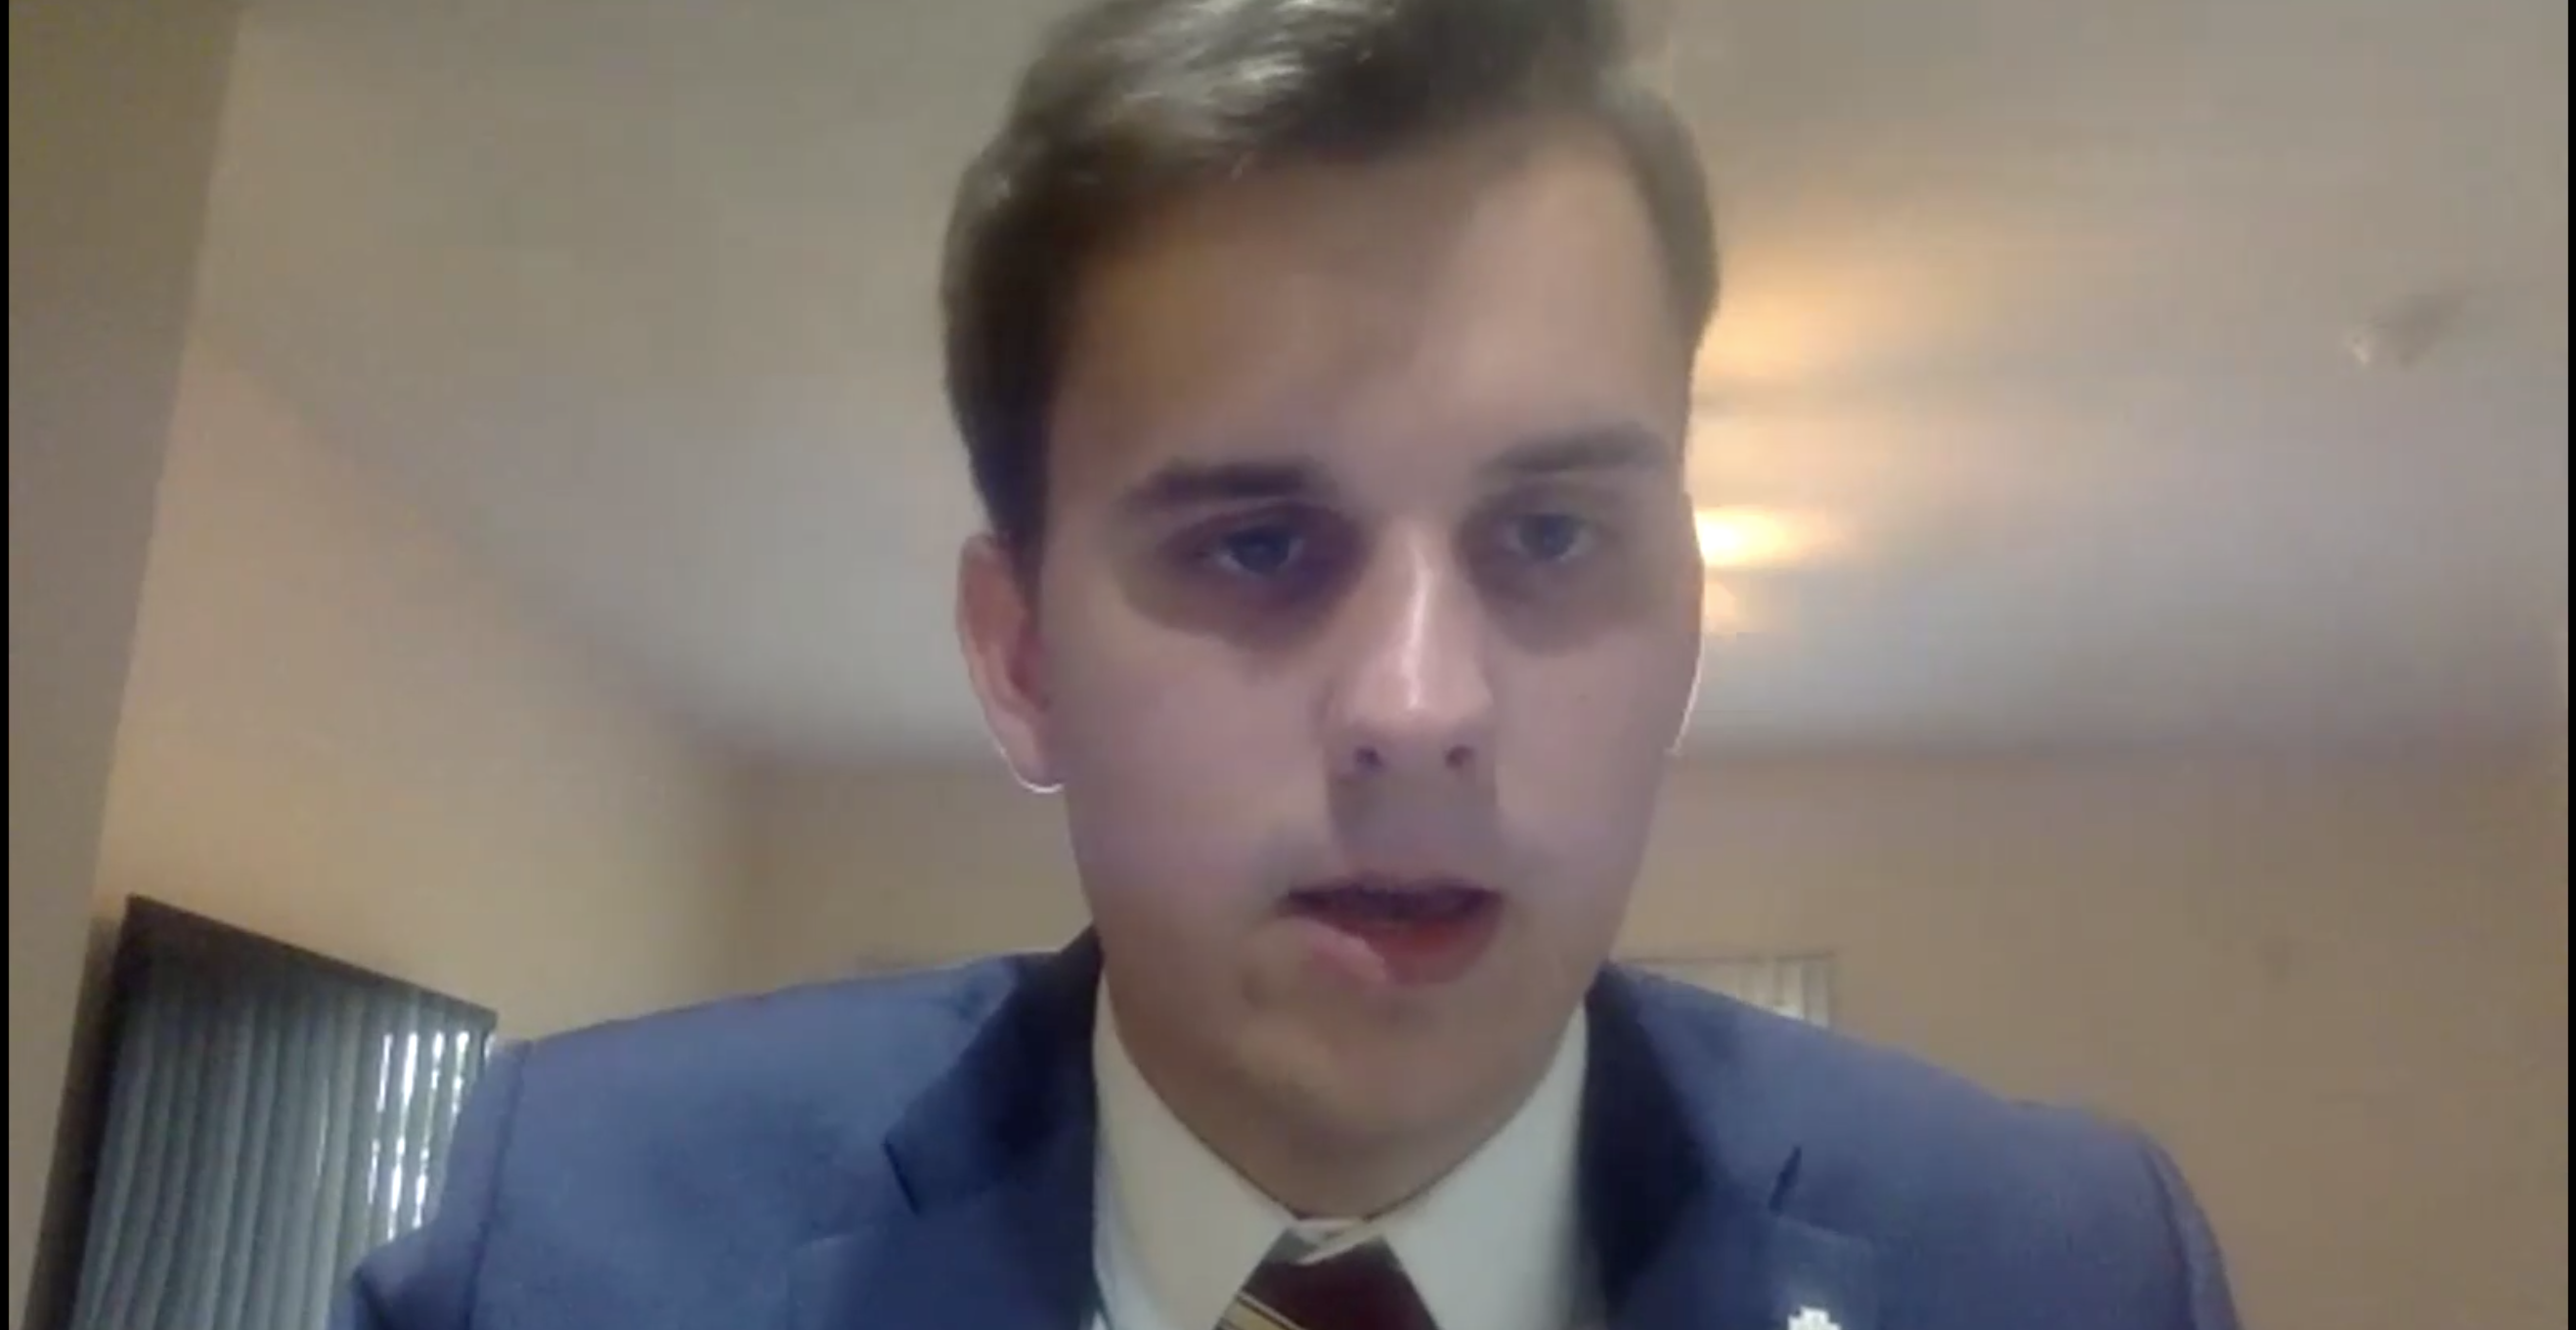 Florida State University Senate president Jack Denton speaks during a June 5 emergency meeting called to determine if he would keep his position as president. (Photo: Florida State University/Screenshot/Zoom)